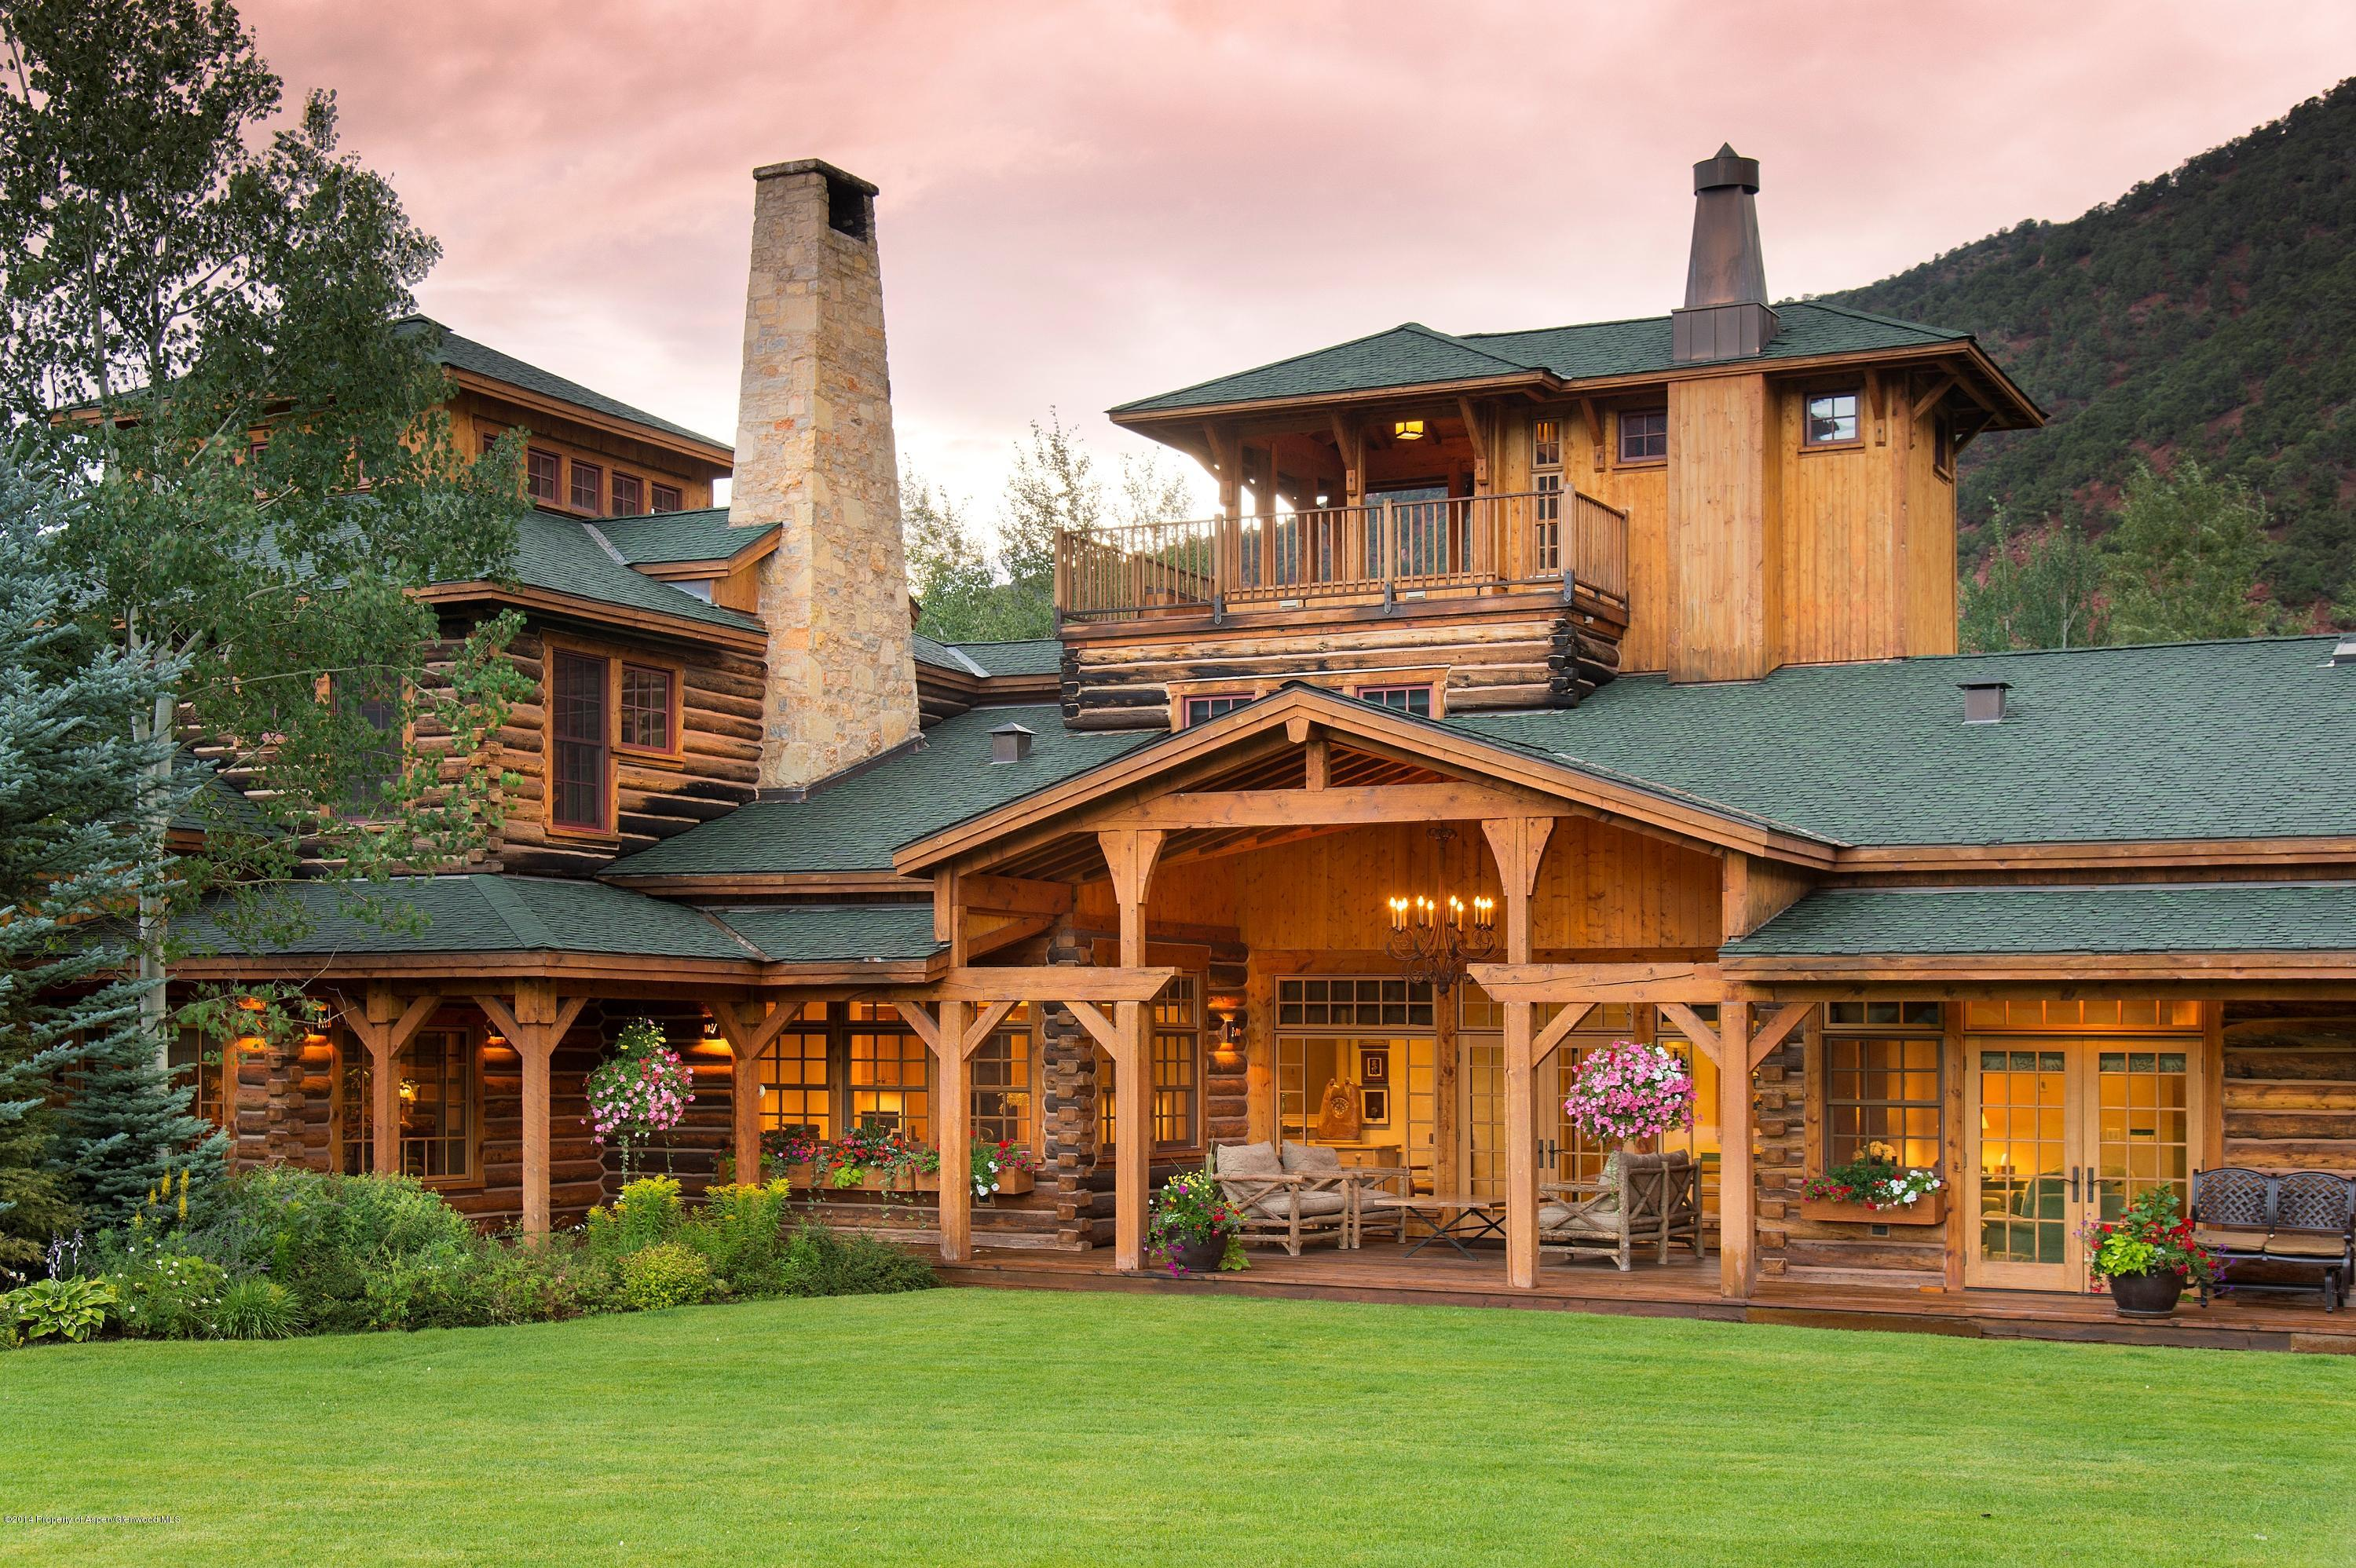 MLS# 135595 - 37 - 50 E River Ranch Road, Snowmass, CO 81654